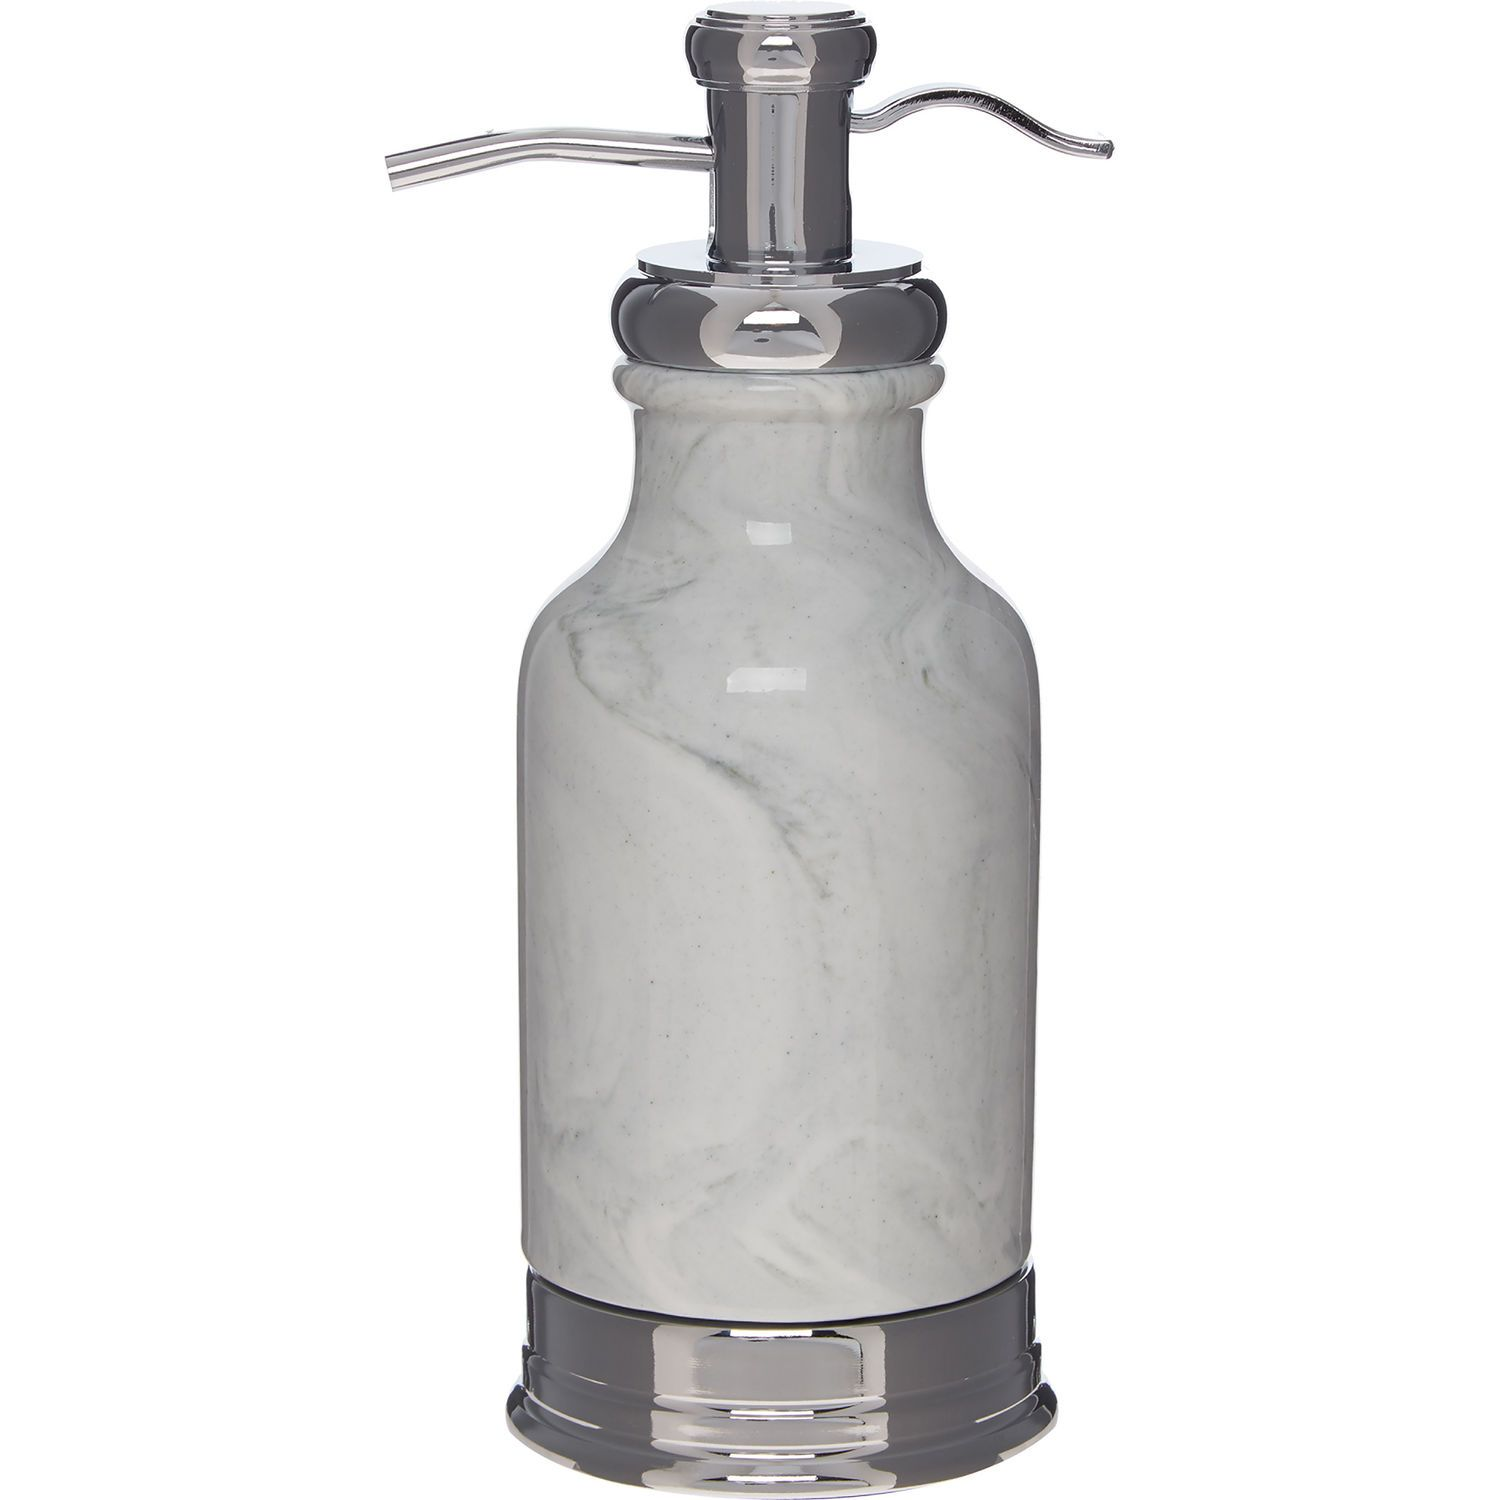 Grey Marble Inspired Soap Dispenser | Bathroom accessories, Marbles ...